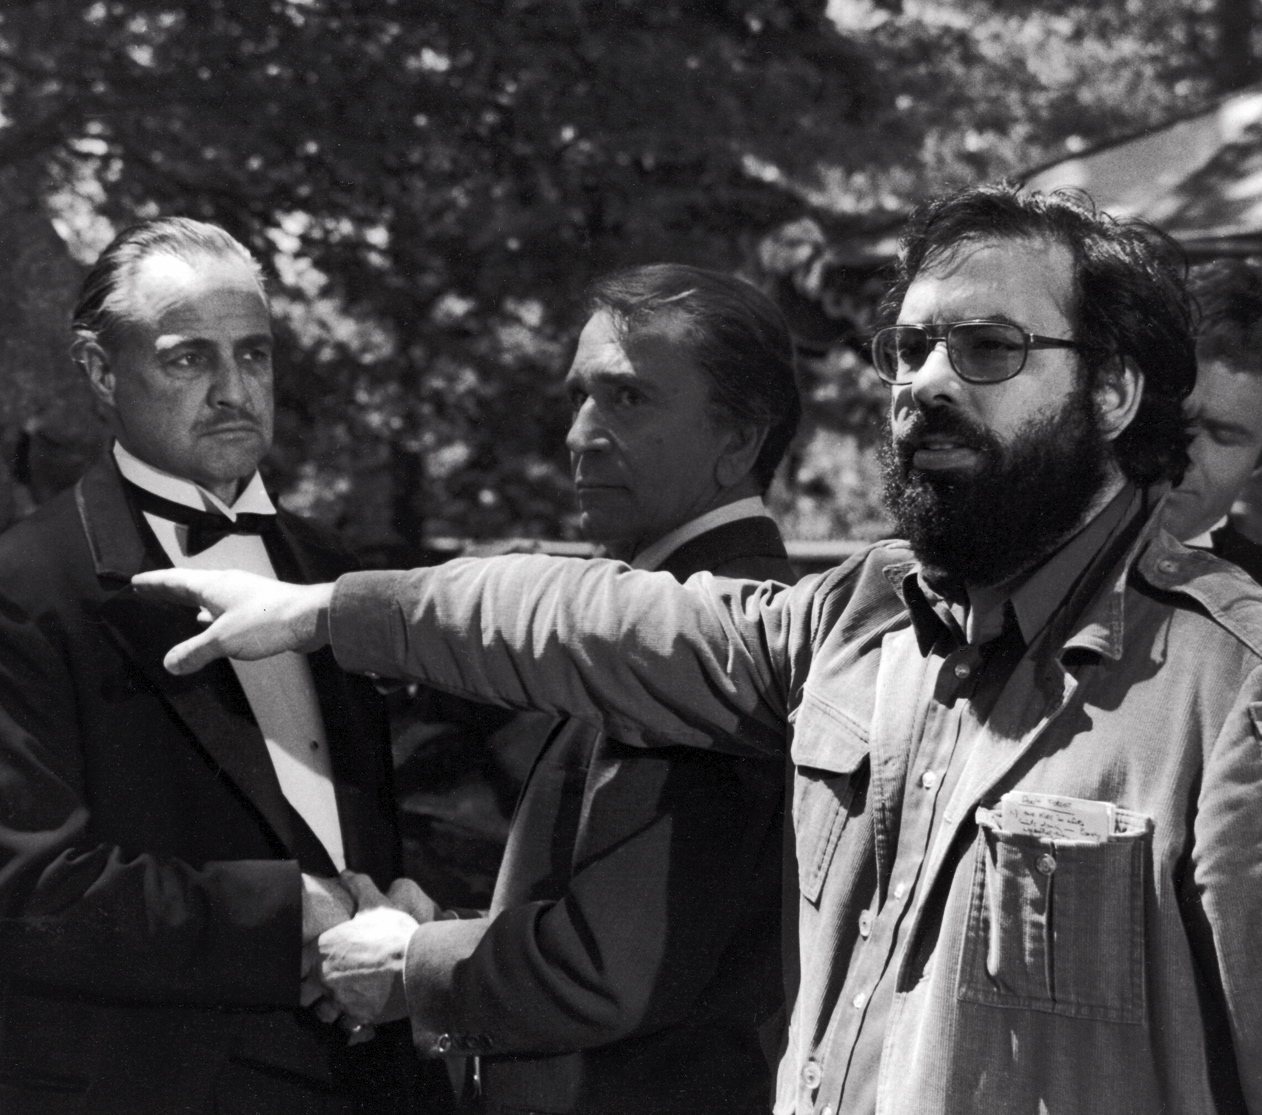 francis and the godfather, francis ford coppola, regisseur, the godfather